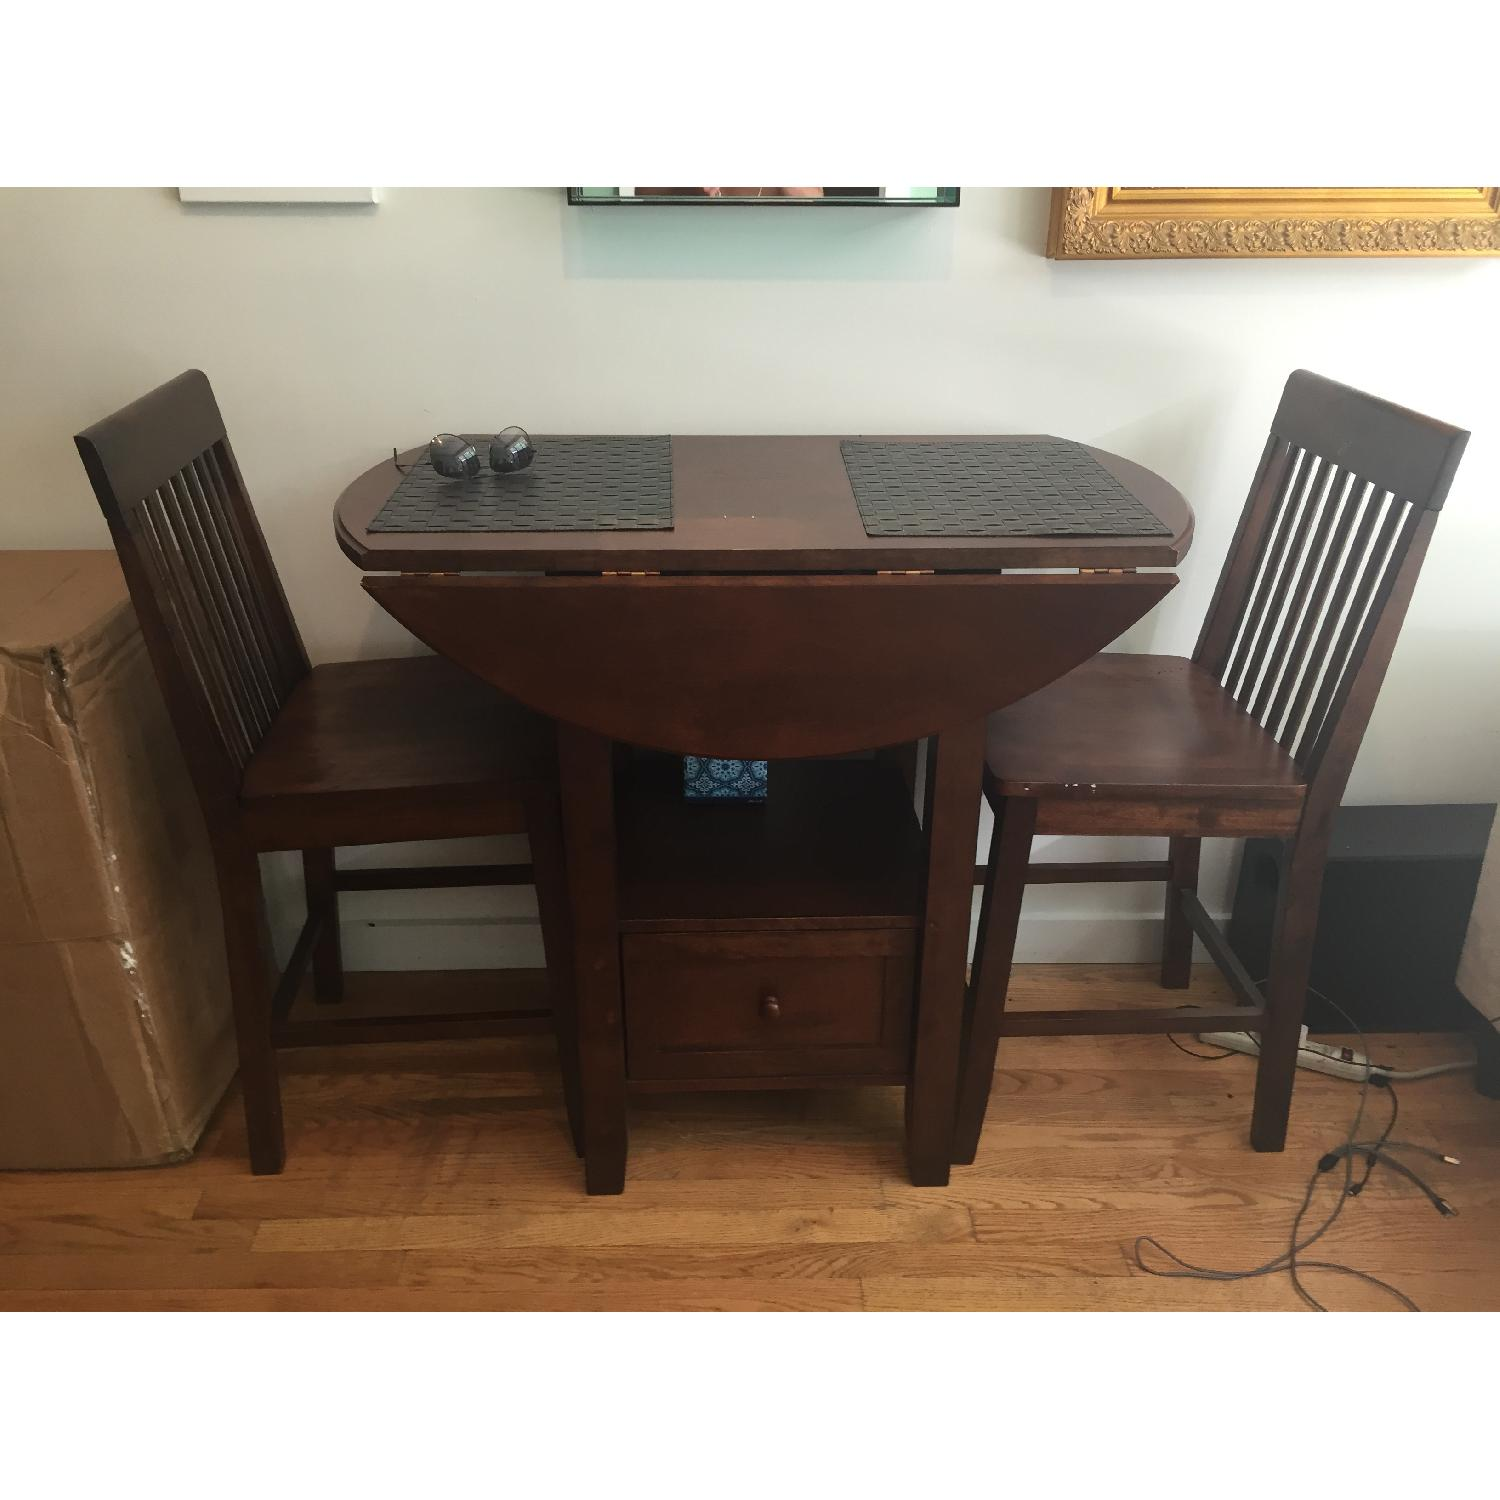 Threshold Wood High Top Table w/ 2 Chairs - image-3